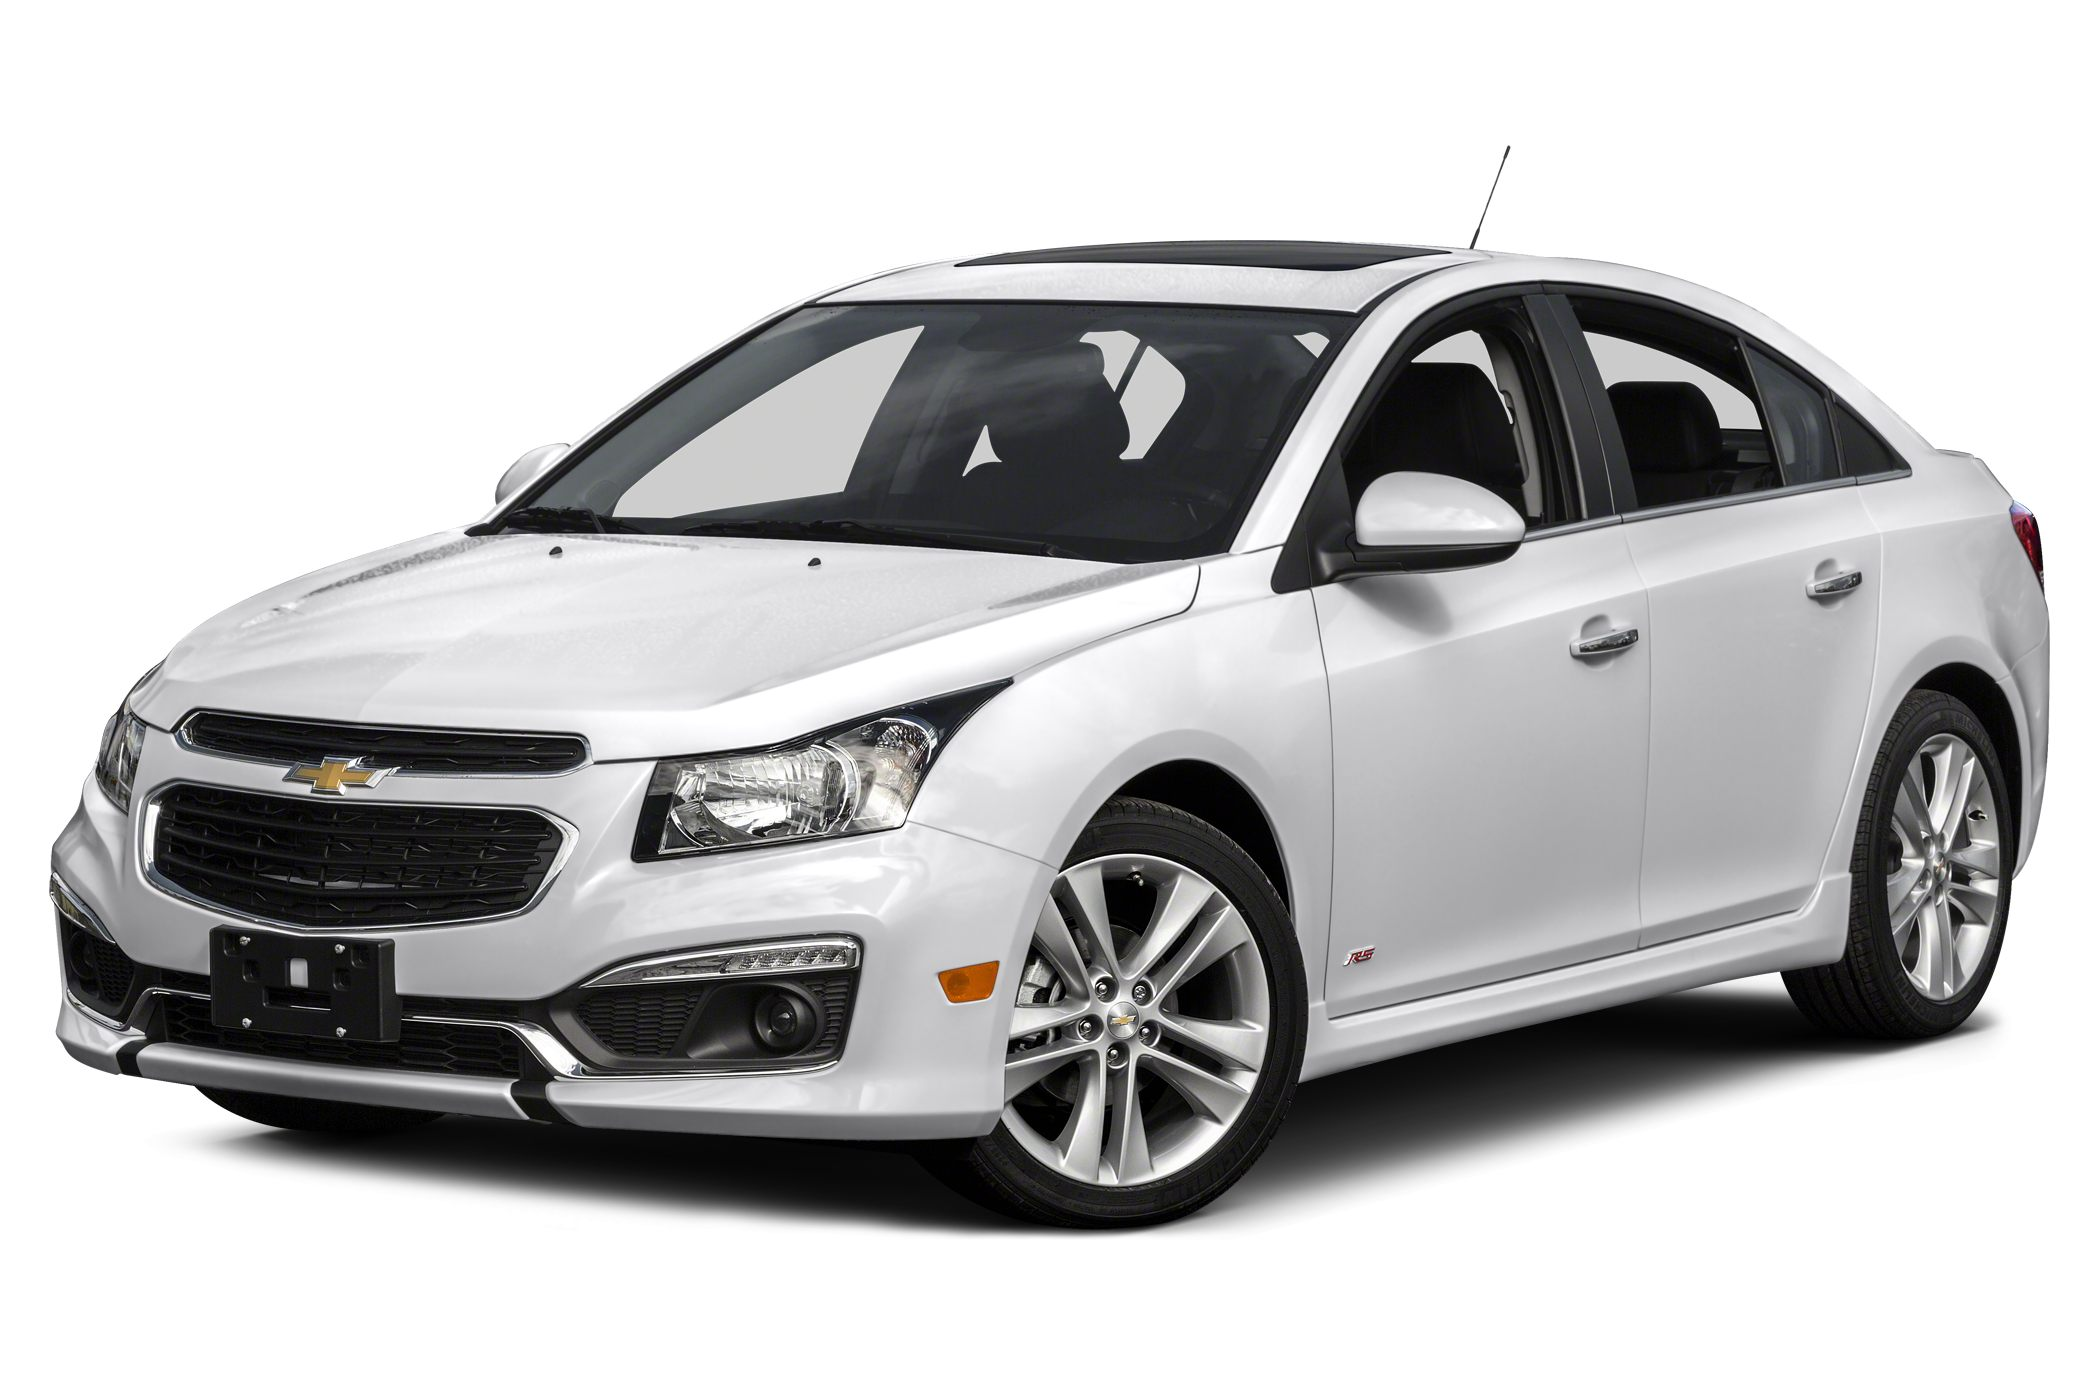 Chevrolet Cruze Owners Manual: Power Outlets